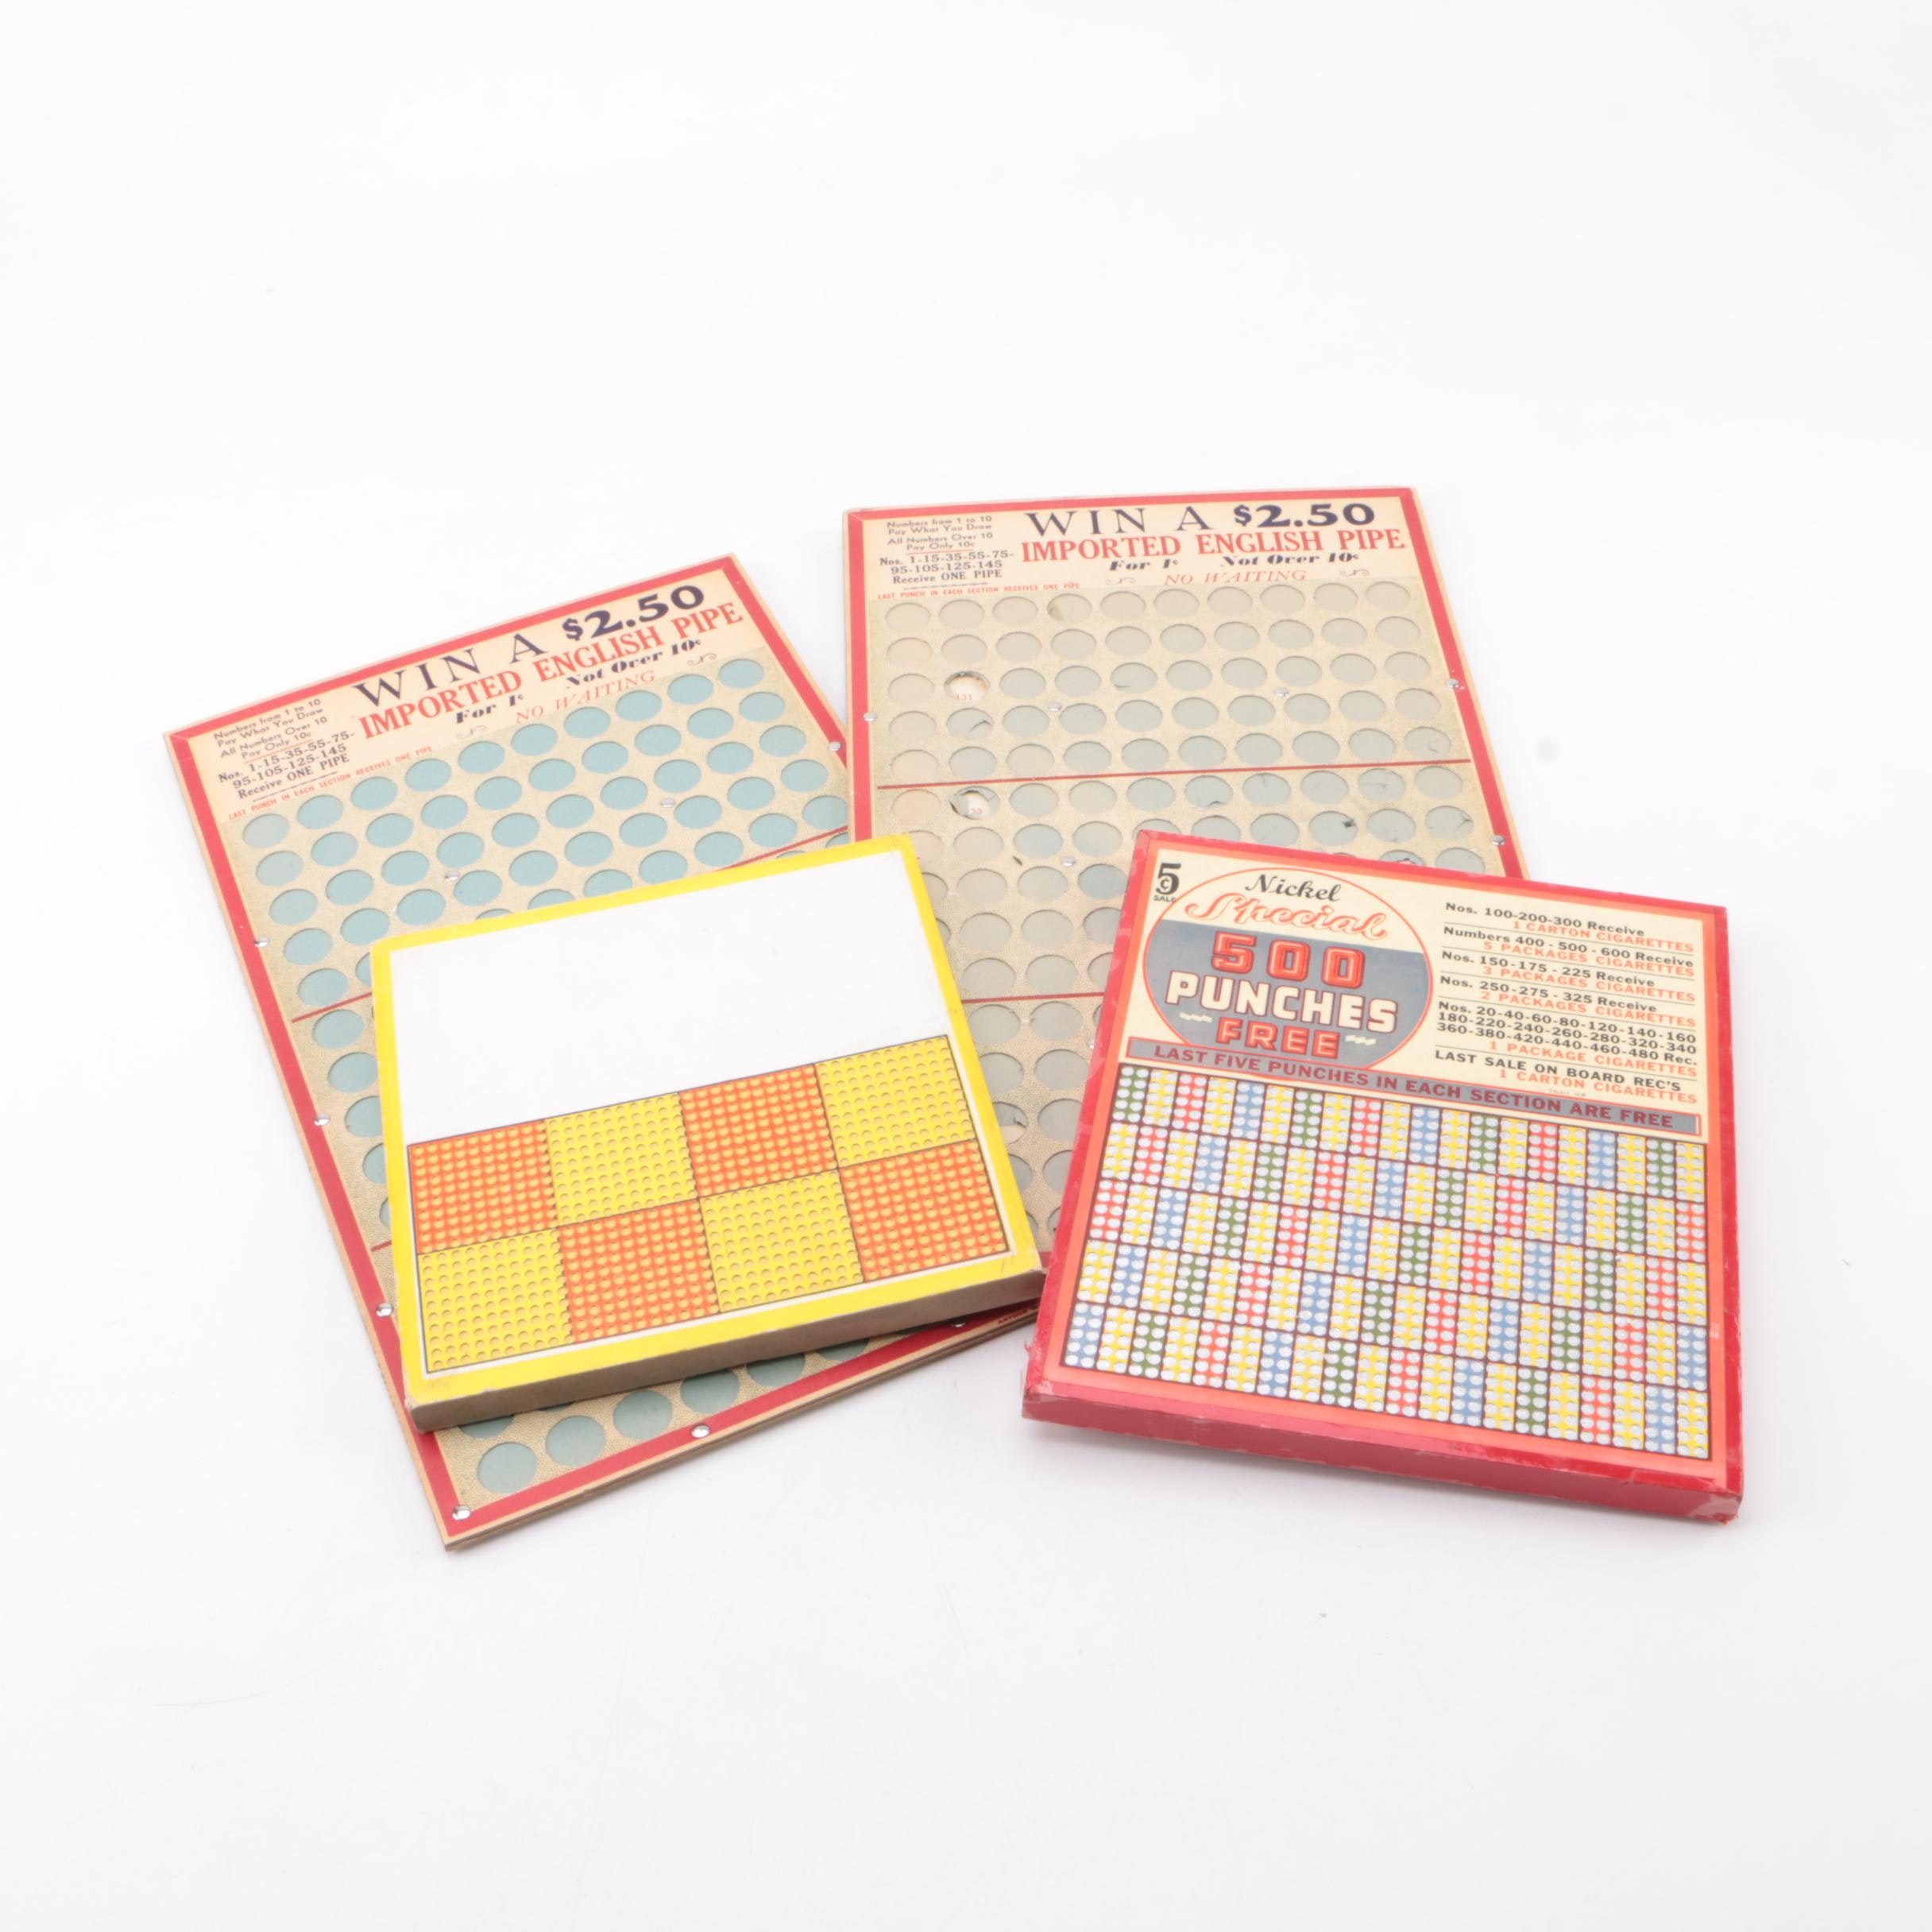 Vintage Hole Punch Boards